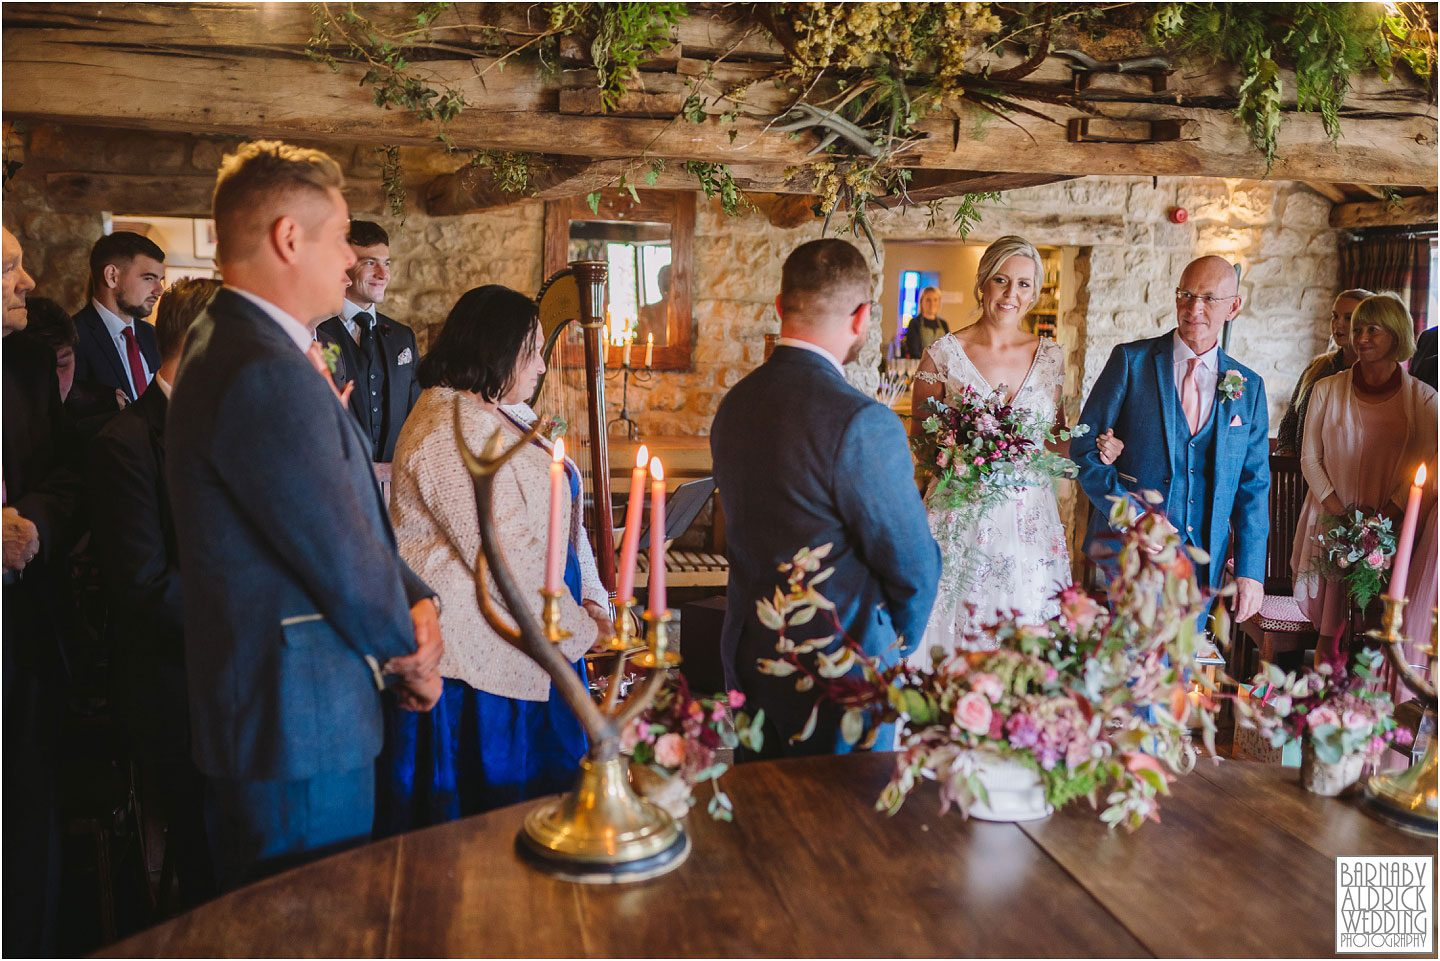 The brides entrance into The cross house lodge by the Star Inn in Harome,  Wedding Photography by Yorkshire Wedding Photographer Barnaby Aldrick, Star Inn wedding, Yorkshire wedding, Helmsley Wedding, Michelin Star Wedding venues